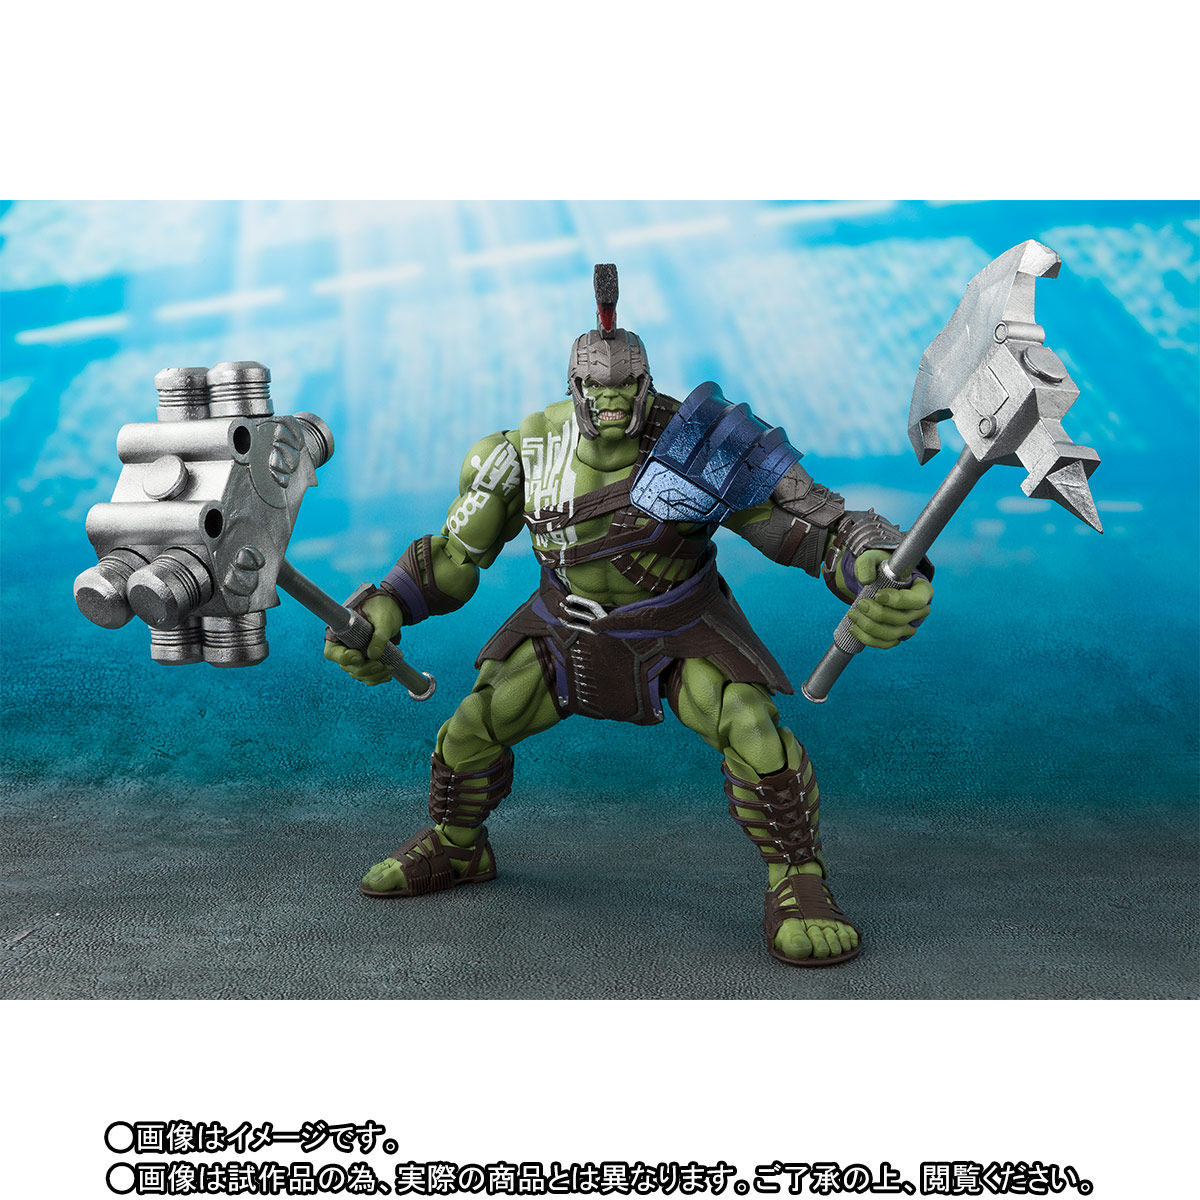 Entertainment Earth Daily Deal – S.H. Figuarts Thor: Ragnarok Hulk Figure Now $90